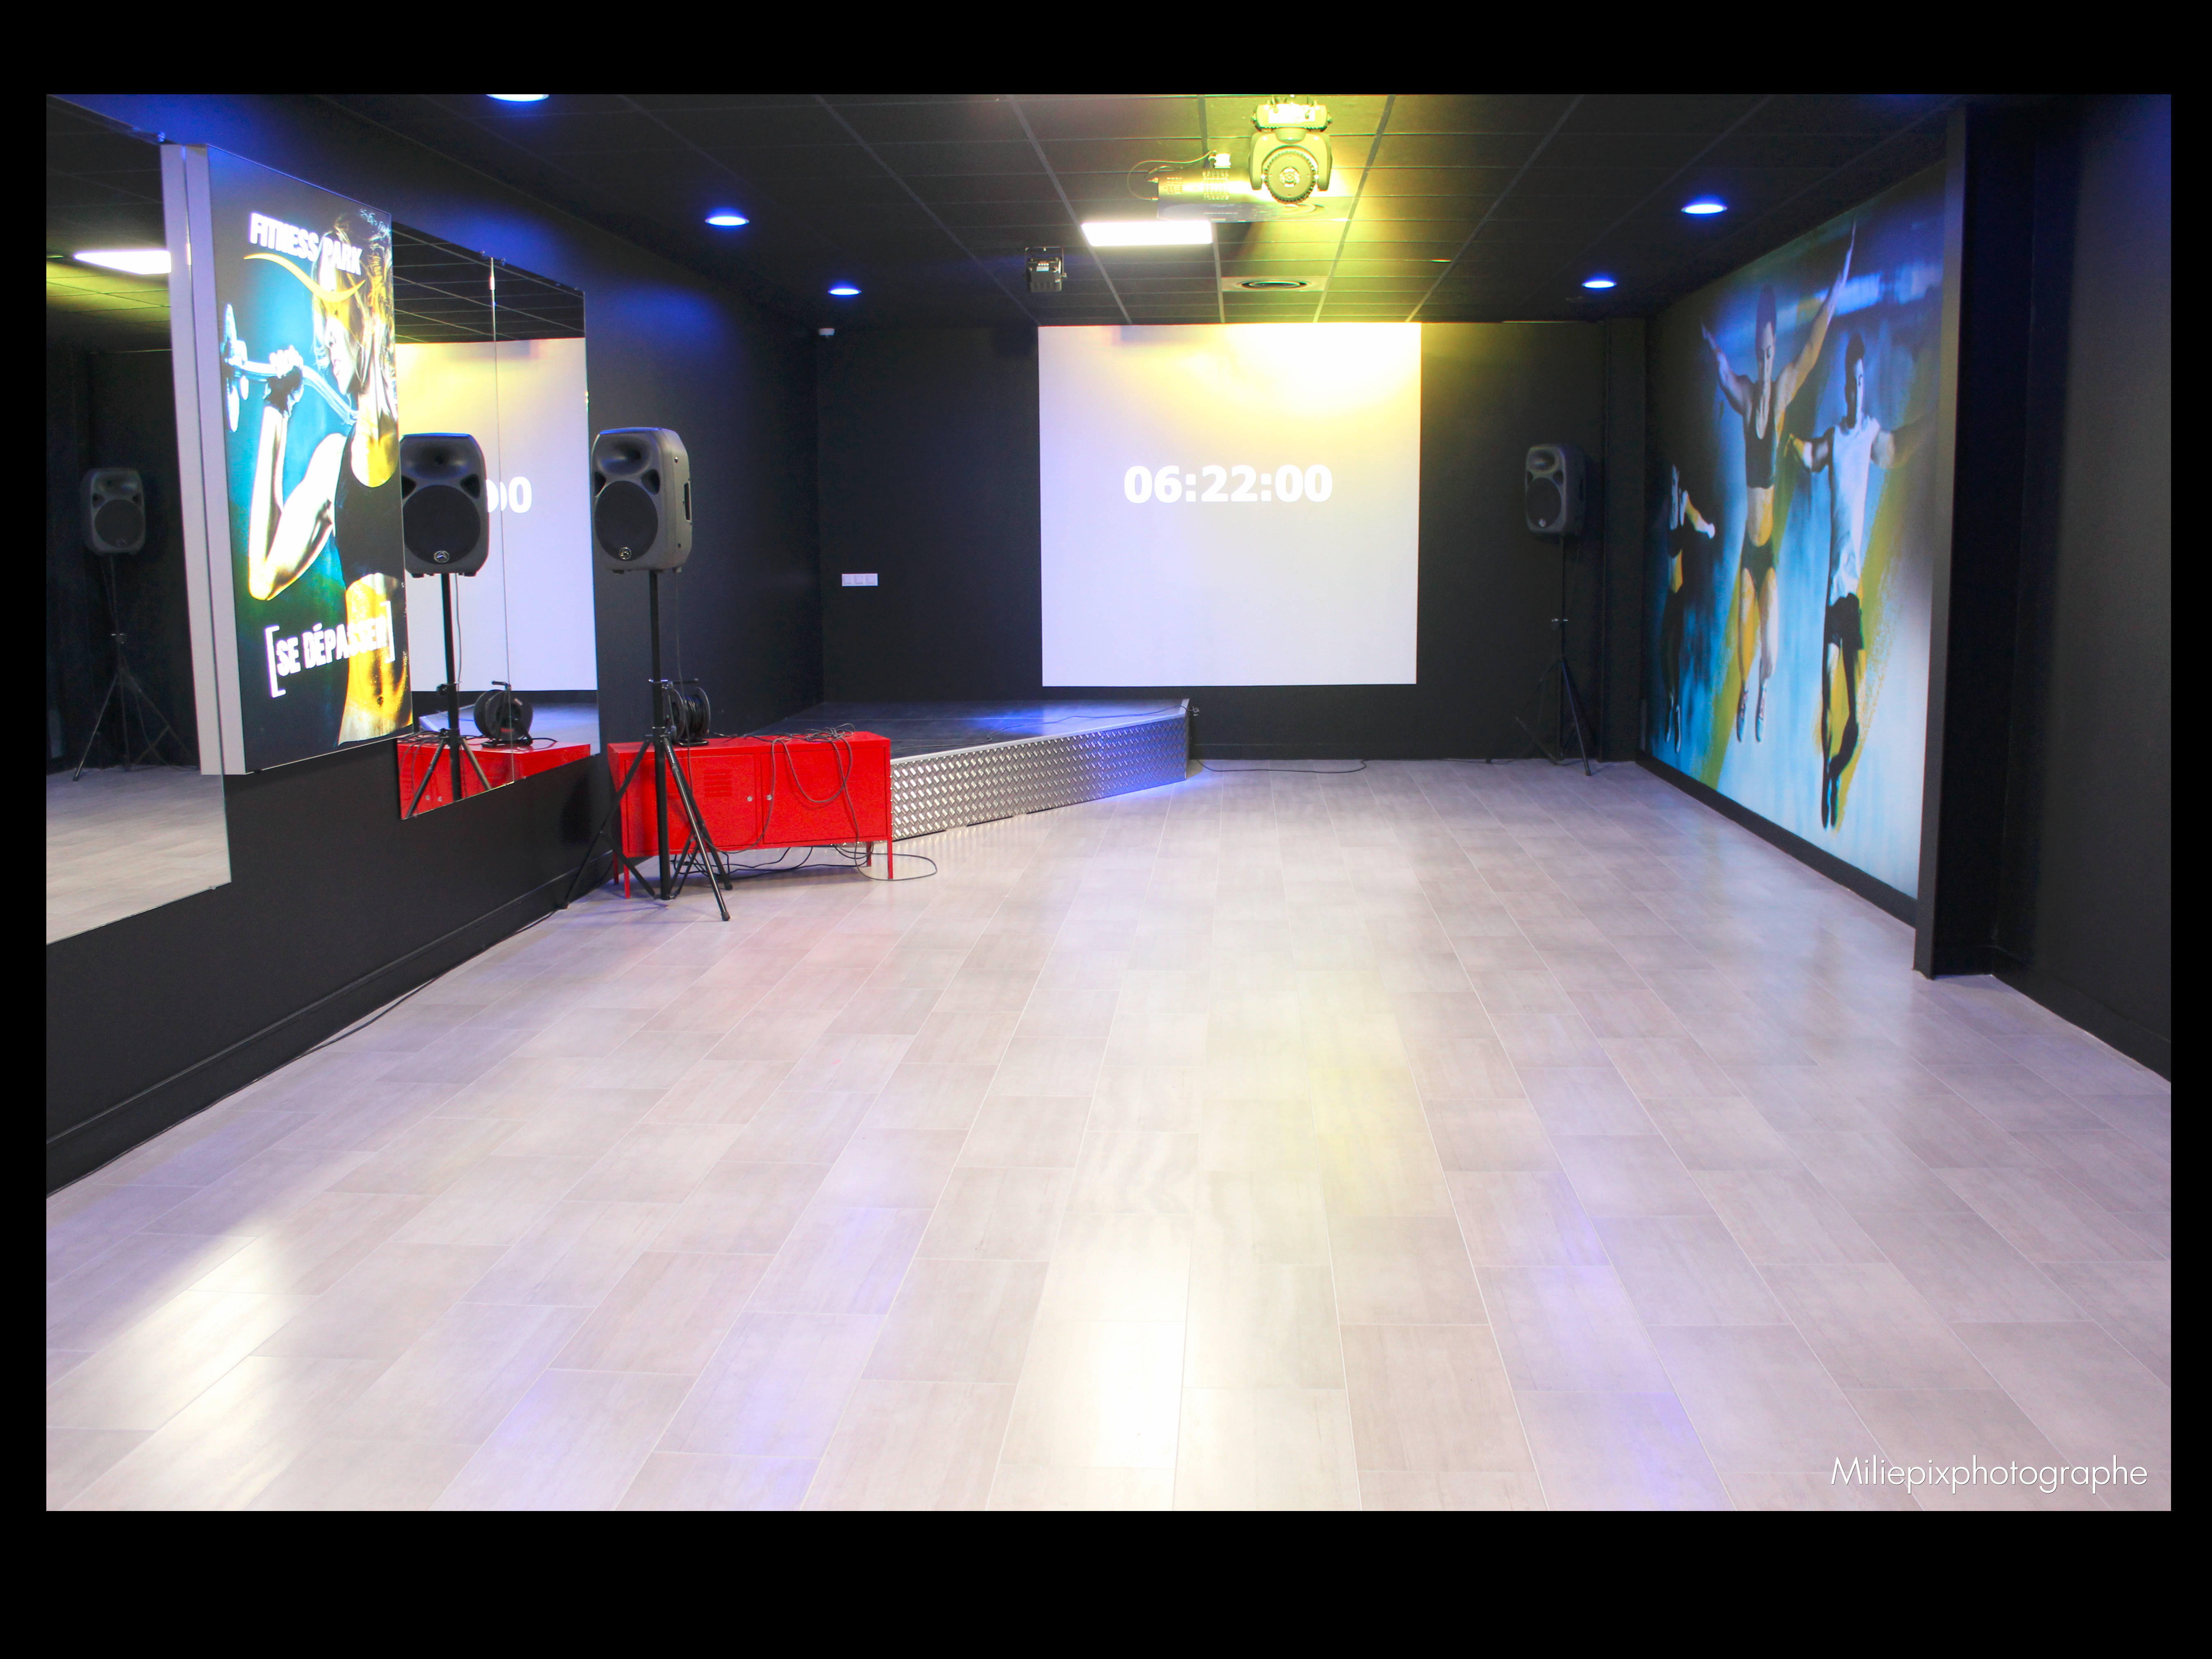 Fitness park coulommiers tarifs avis horaires offre for Cinema coulommiers horaires